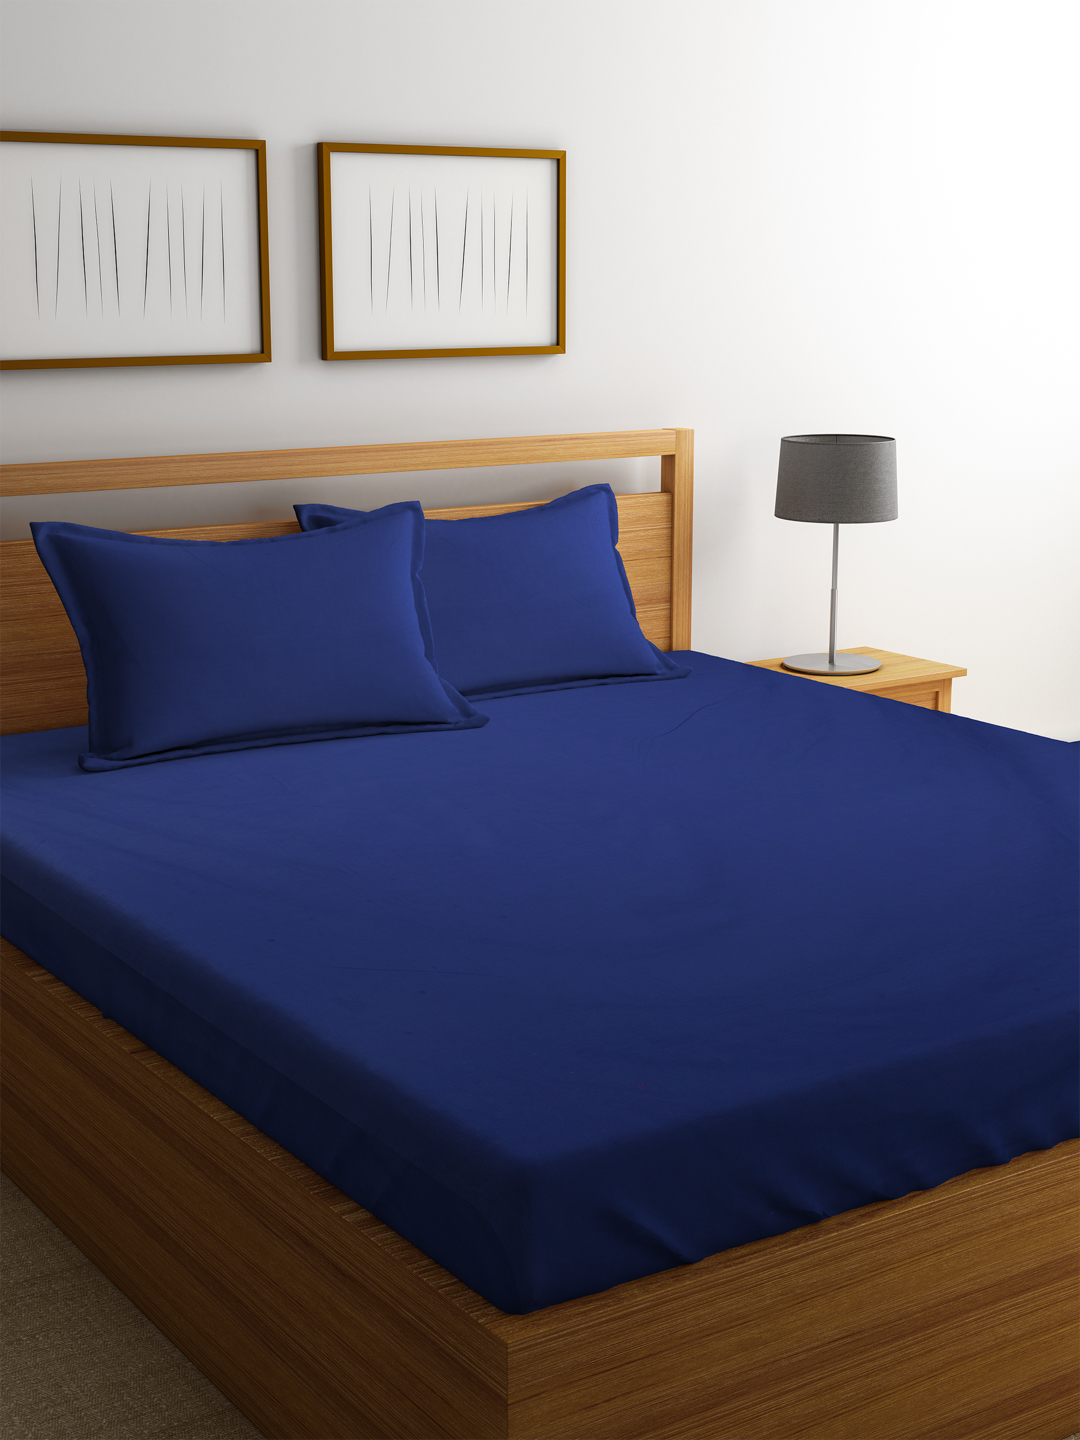 Portico Supercale Cotton Double Bed Sheets in Blue Colour by Portico